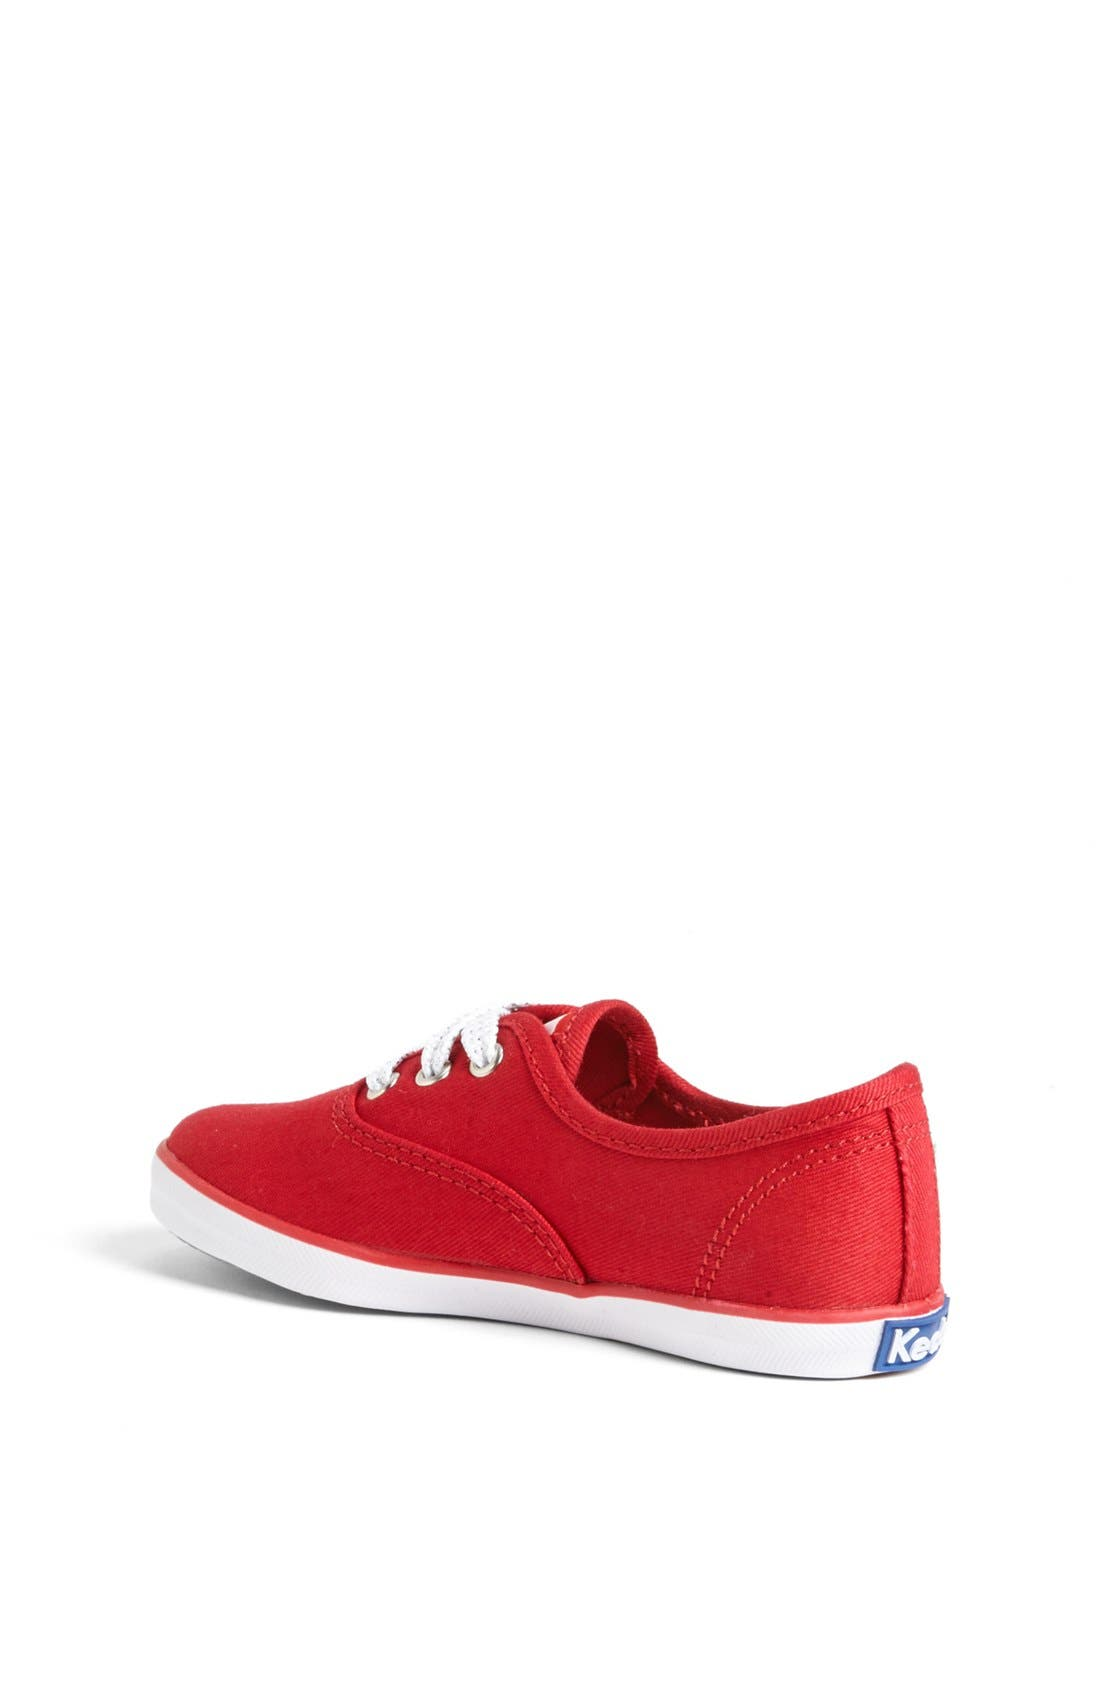 Alternate Image 2  - Keds® 'Champion K' Sneaker (Toddler, Little Kid & Big Kid)